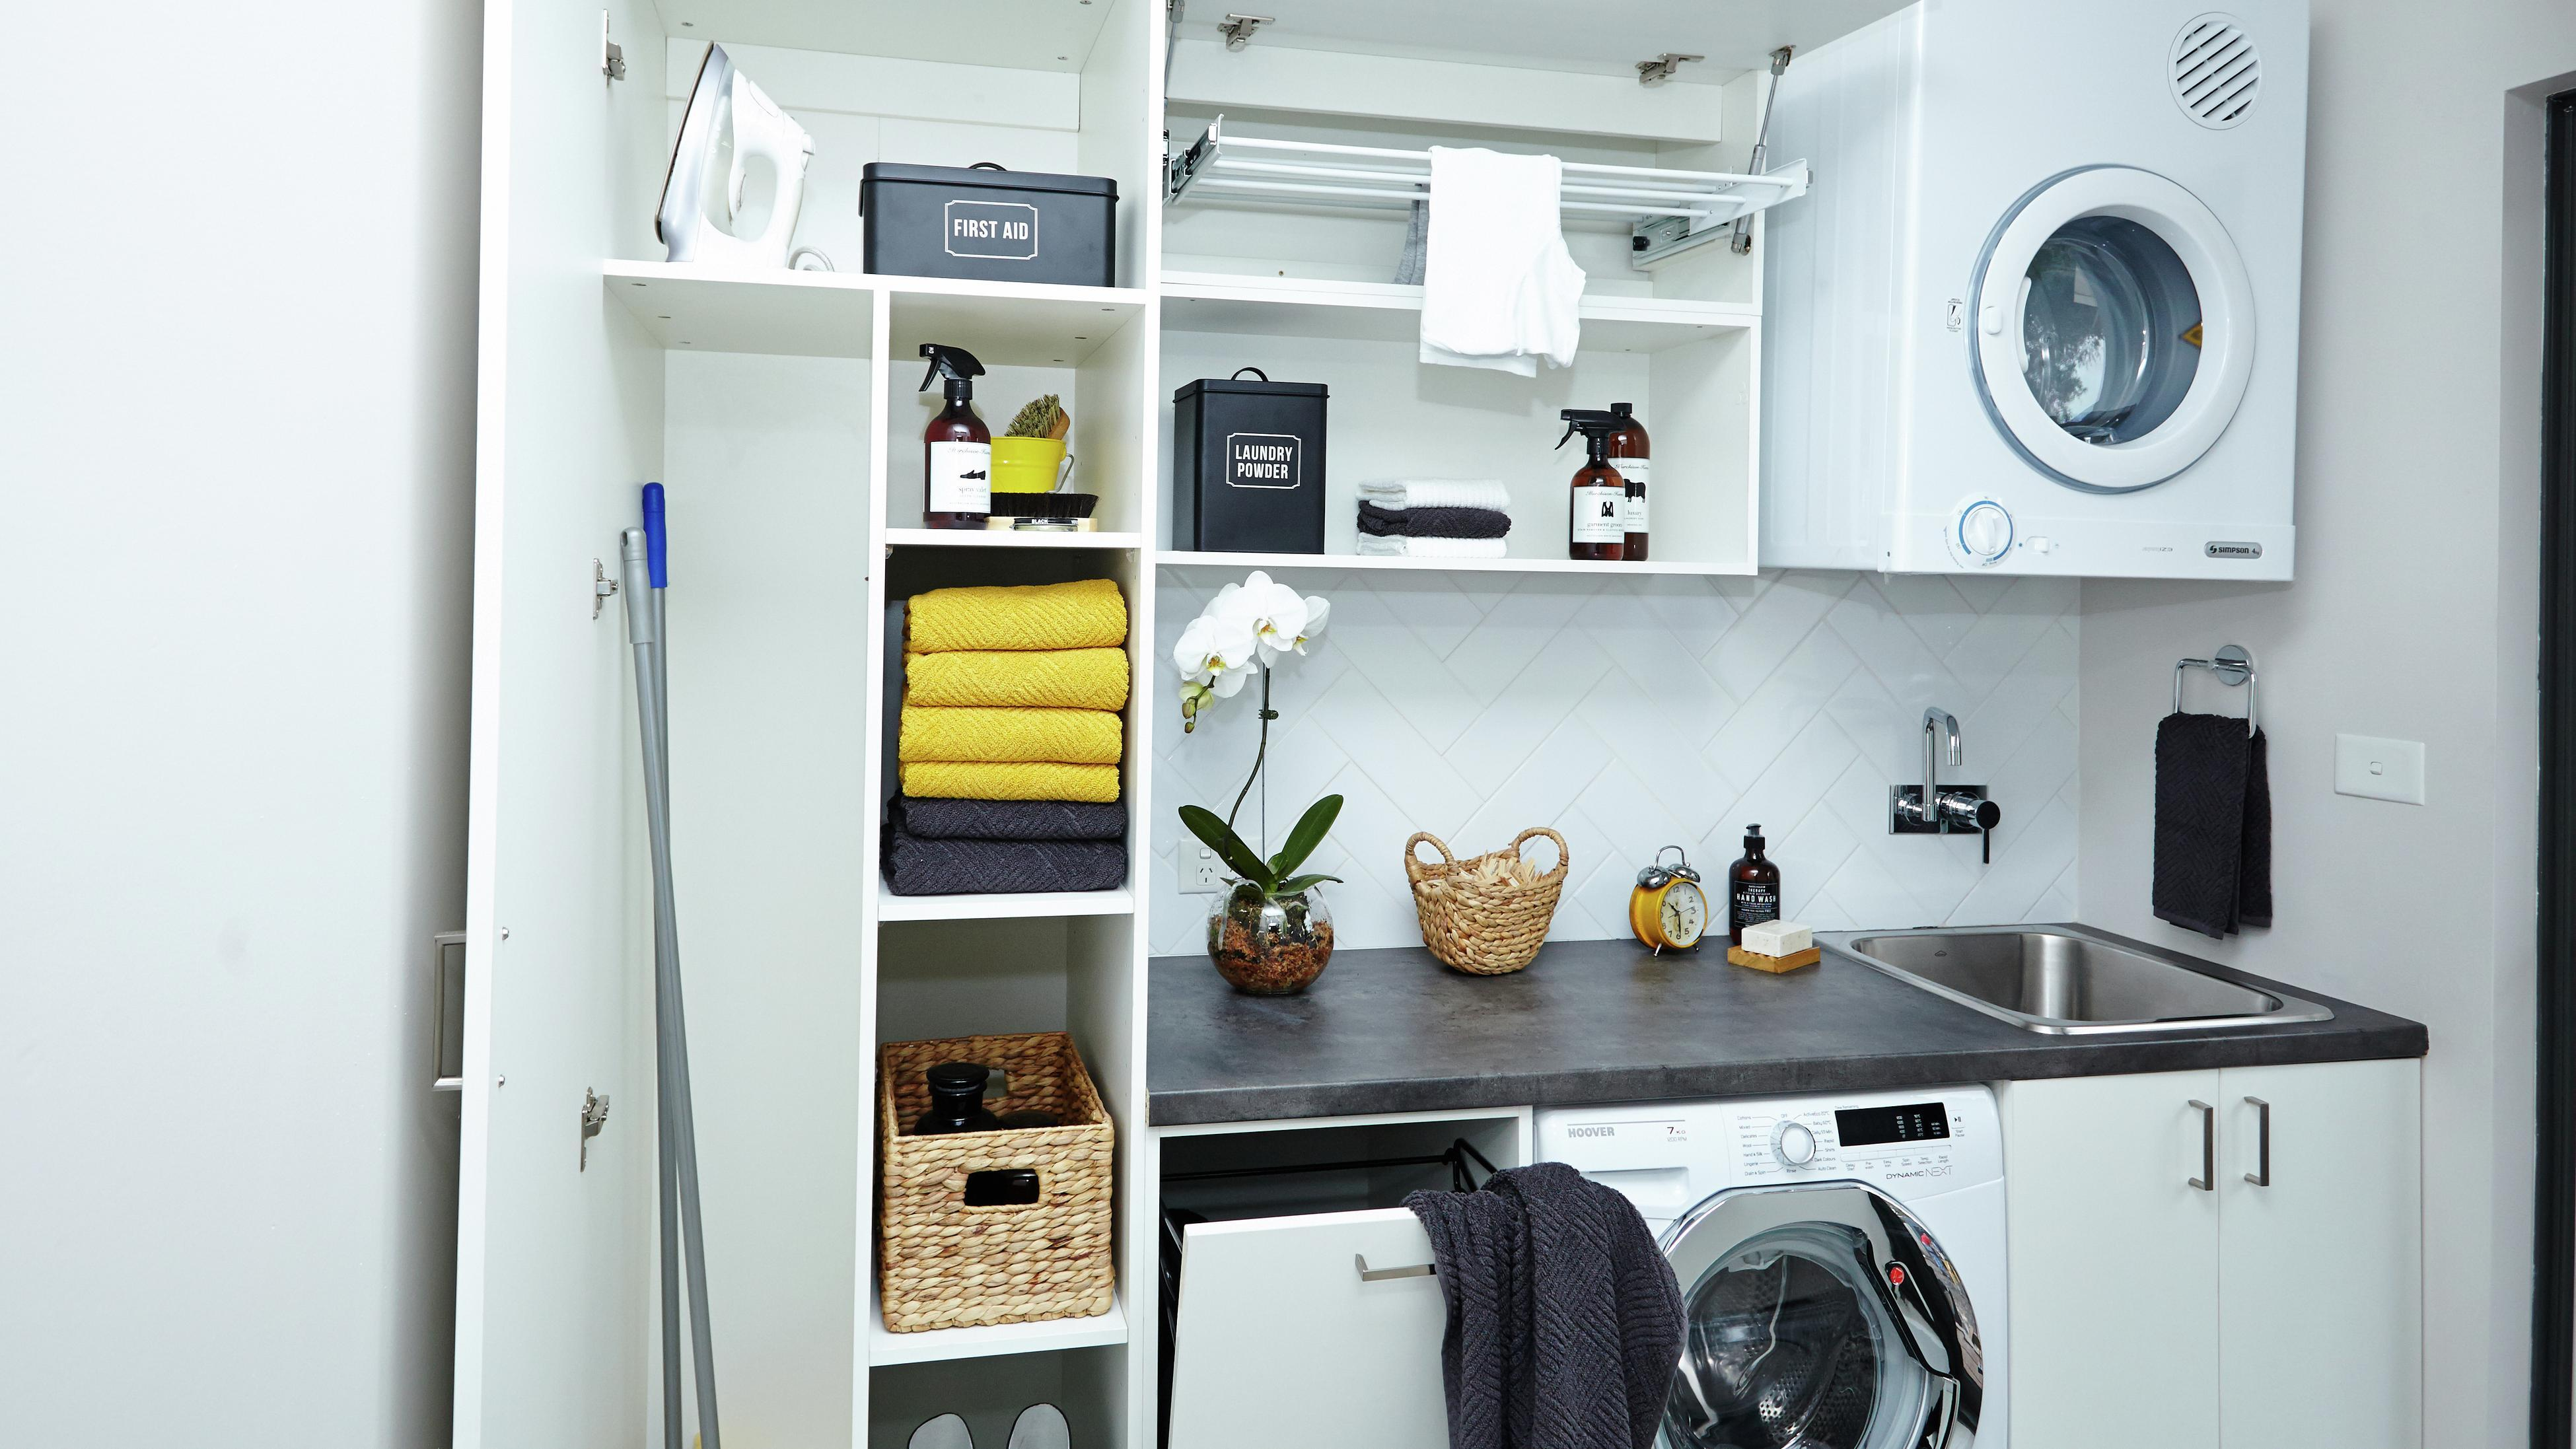 Tidy broom cupboard featuring brooms, towels, a washing machine and dryer.